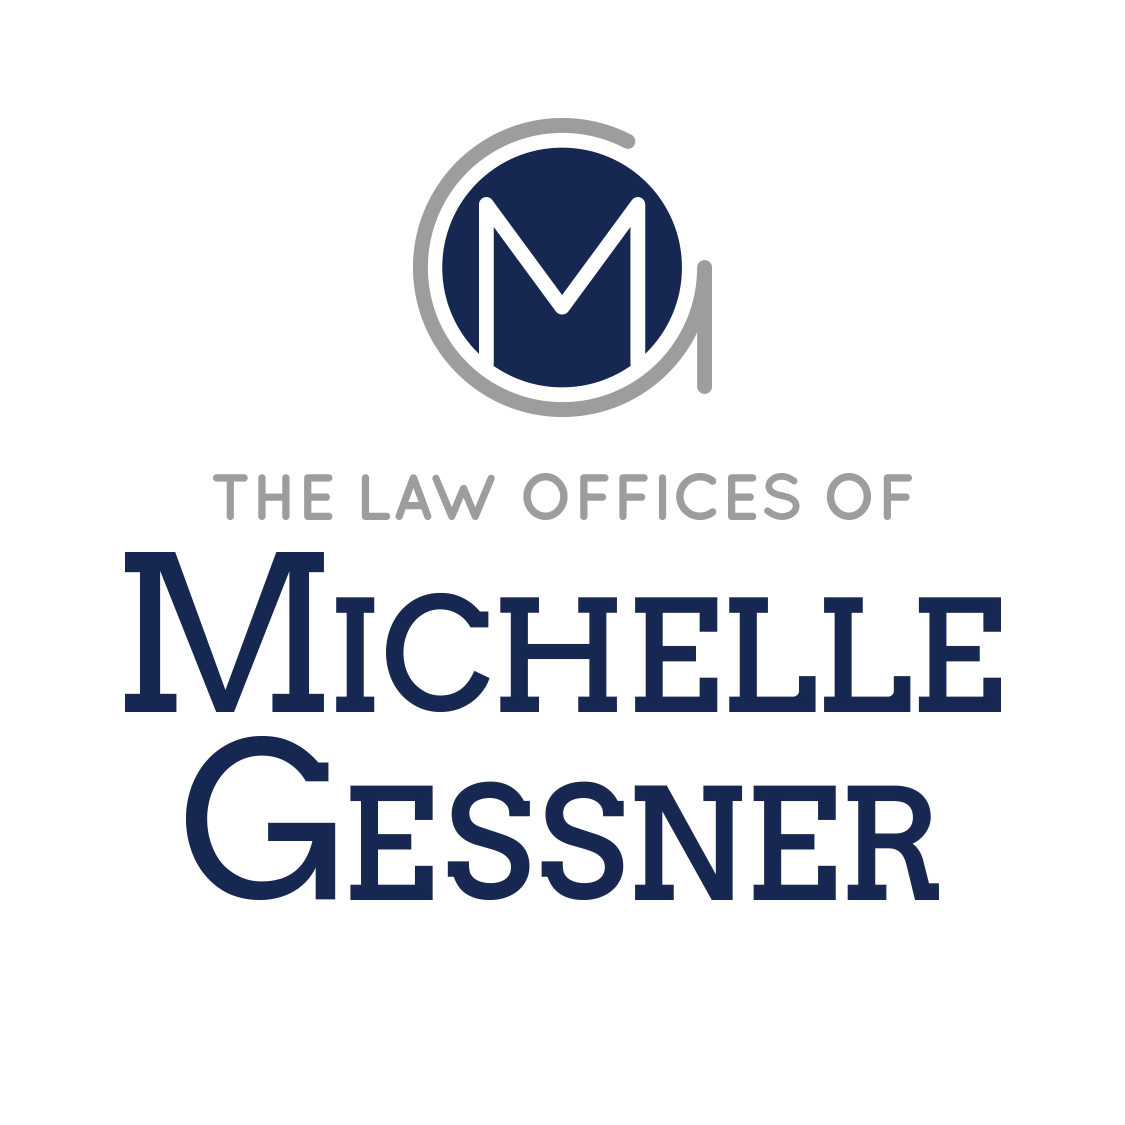 The Law Offices of Michelle Gessner, PLLC image 3